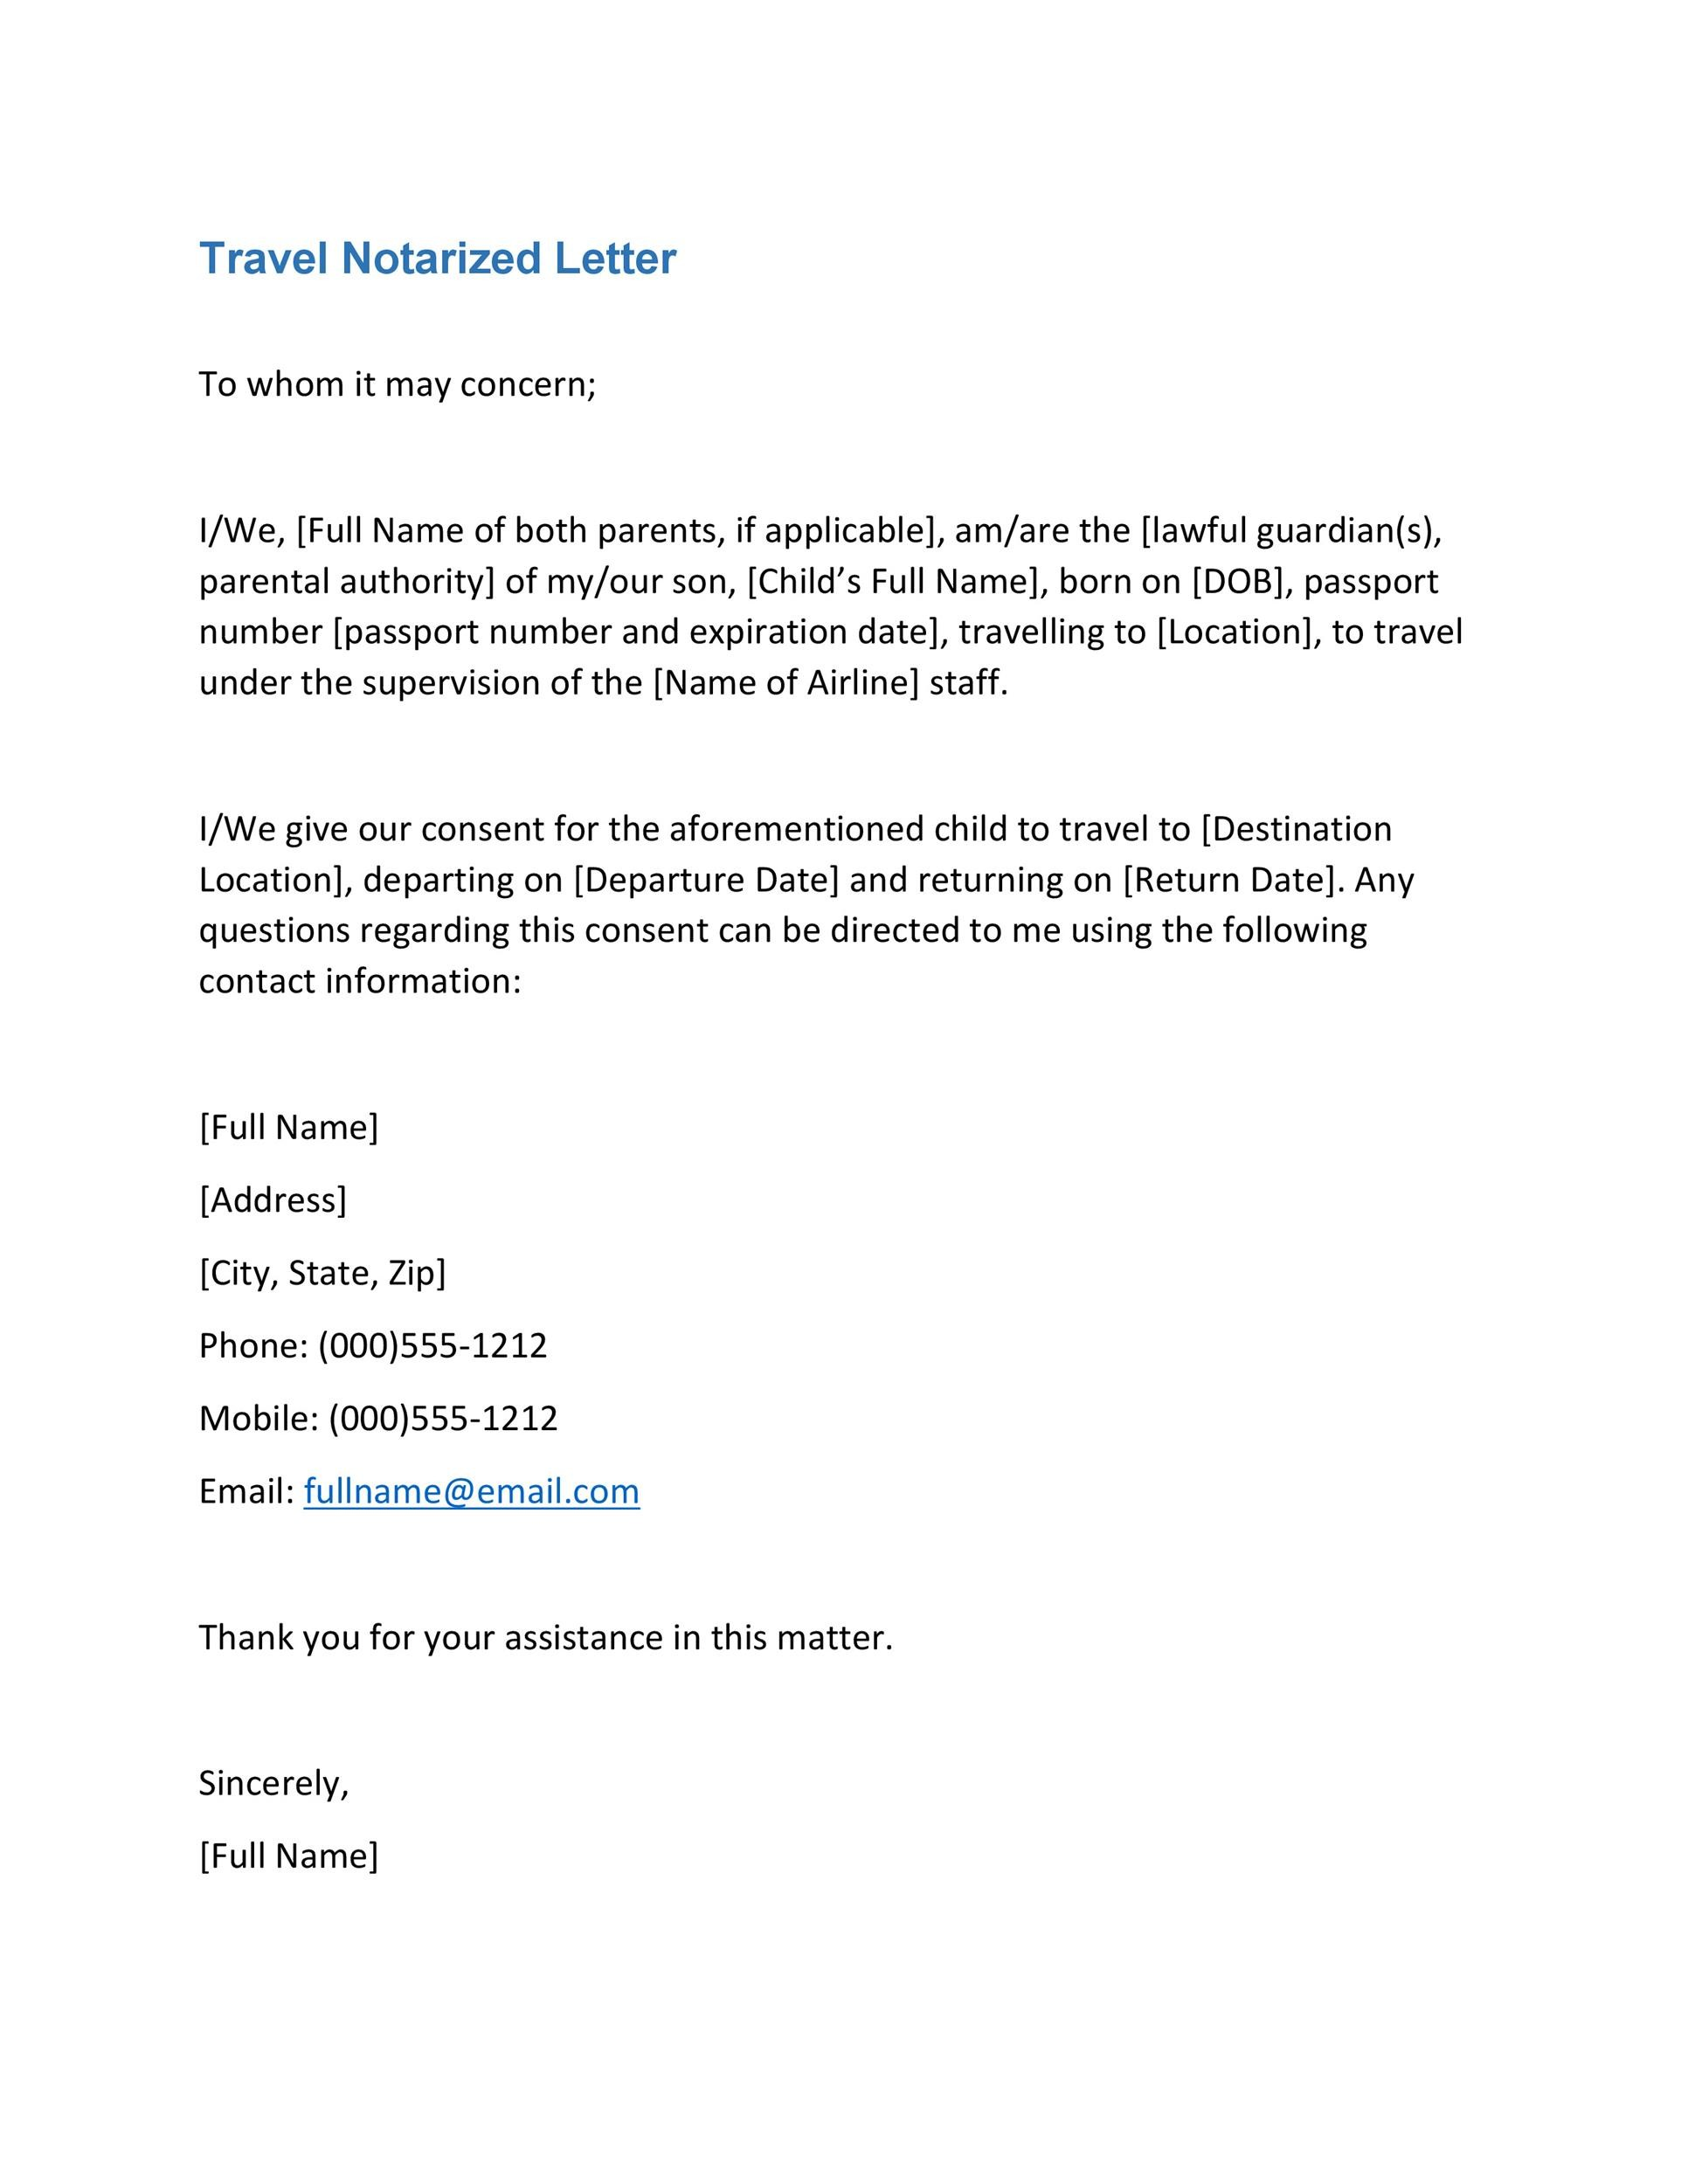 Gift letter template 30 professional notarized letter templates 30 professional notarized letter templates template lab negle Images